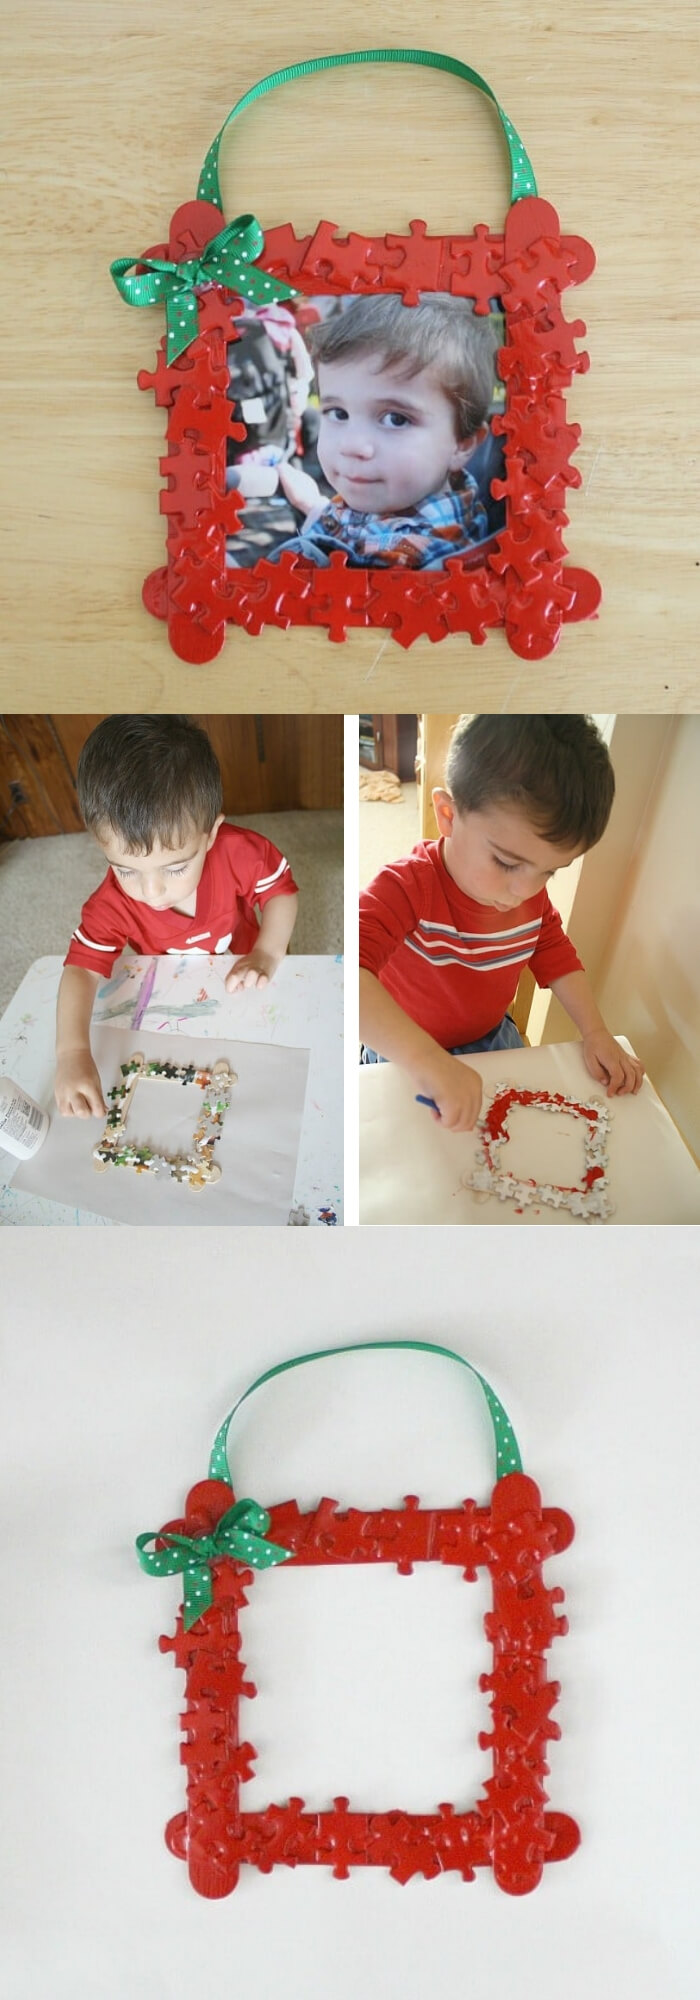 Puzzle Piece Frame | Photo Frames | Easy, Inexpensive, and Creative Christmas Crafts for Kids